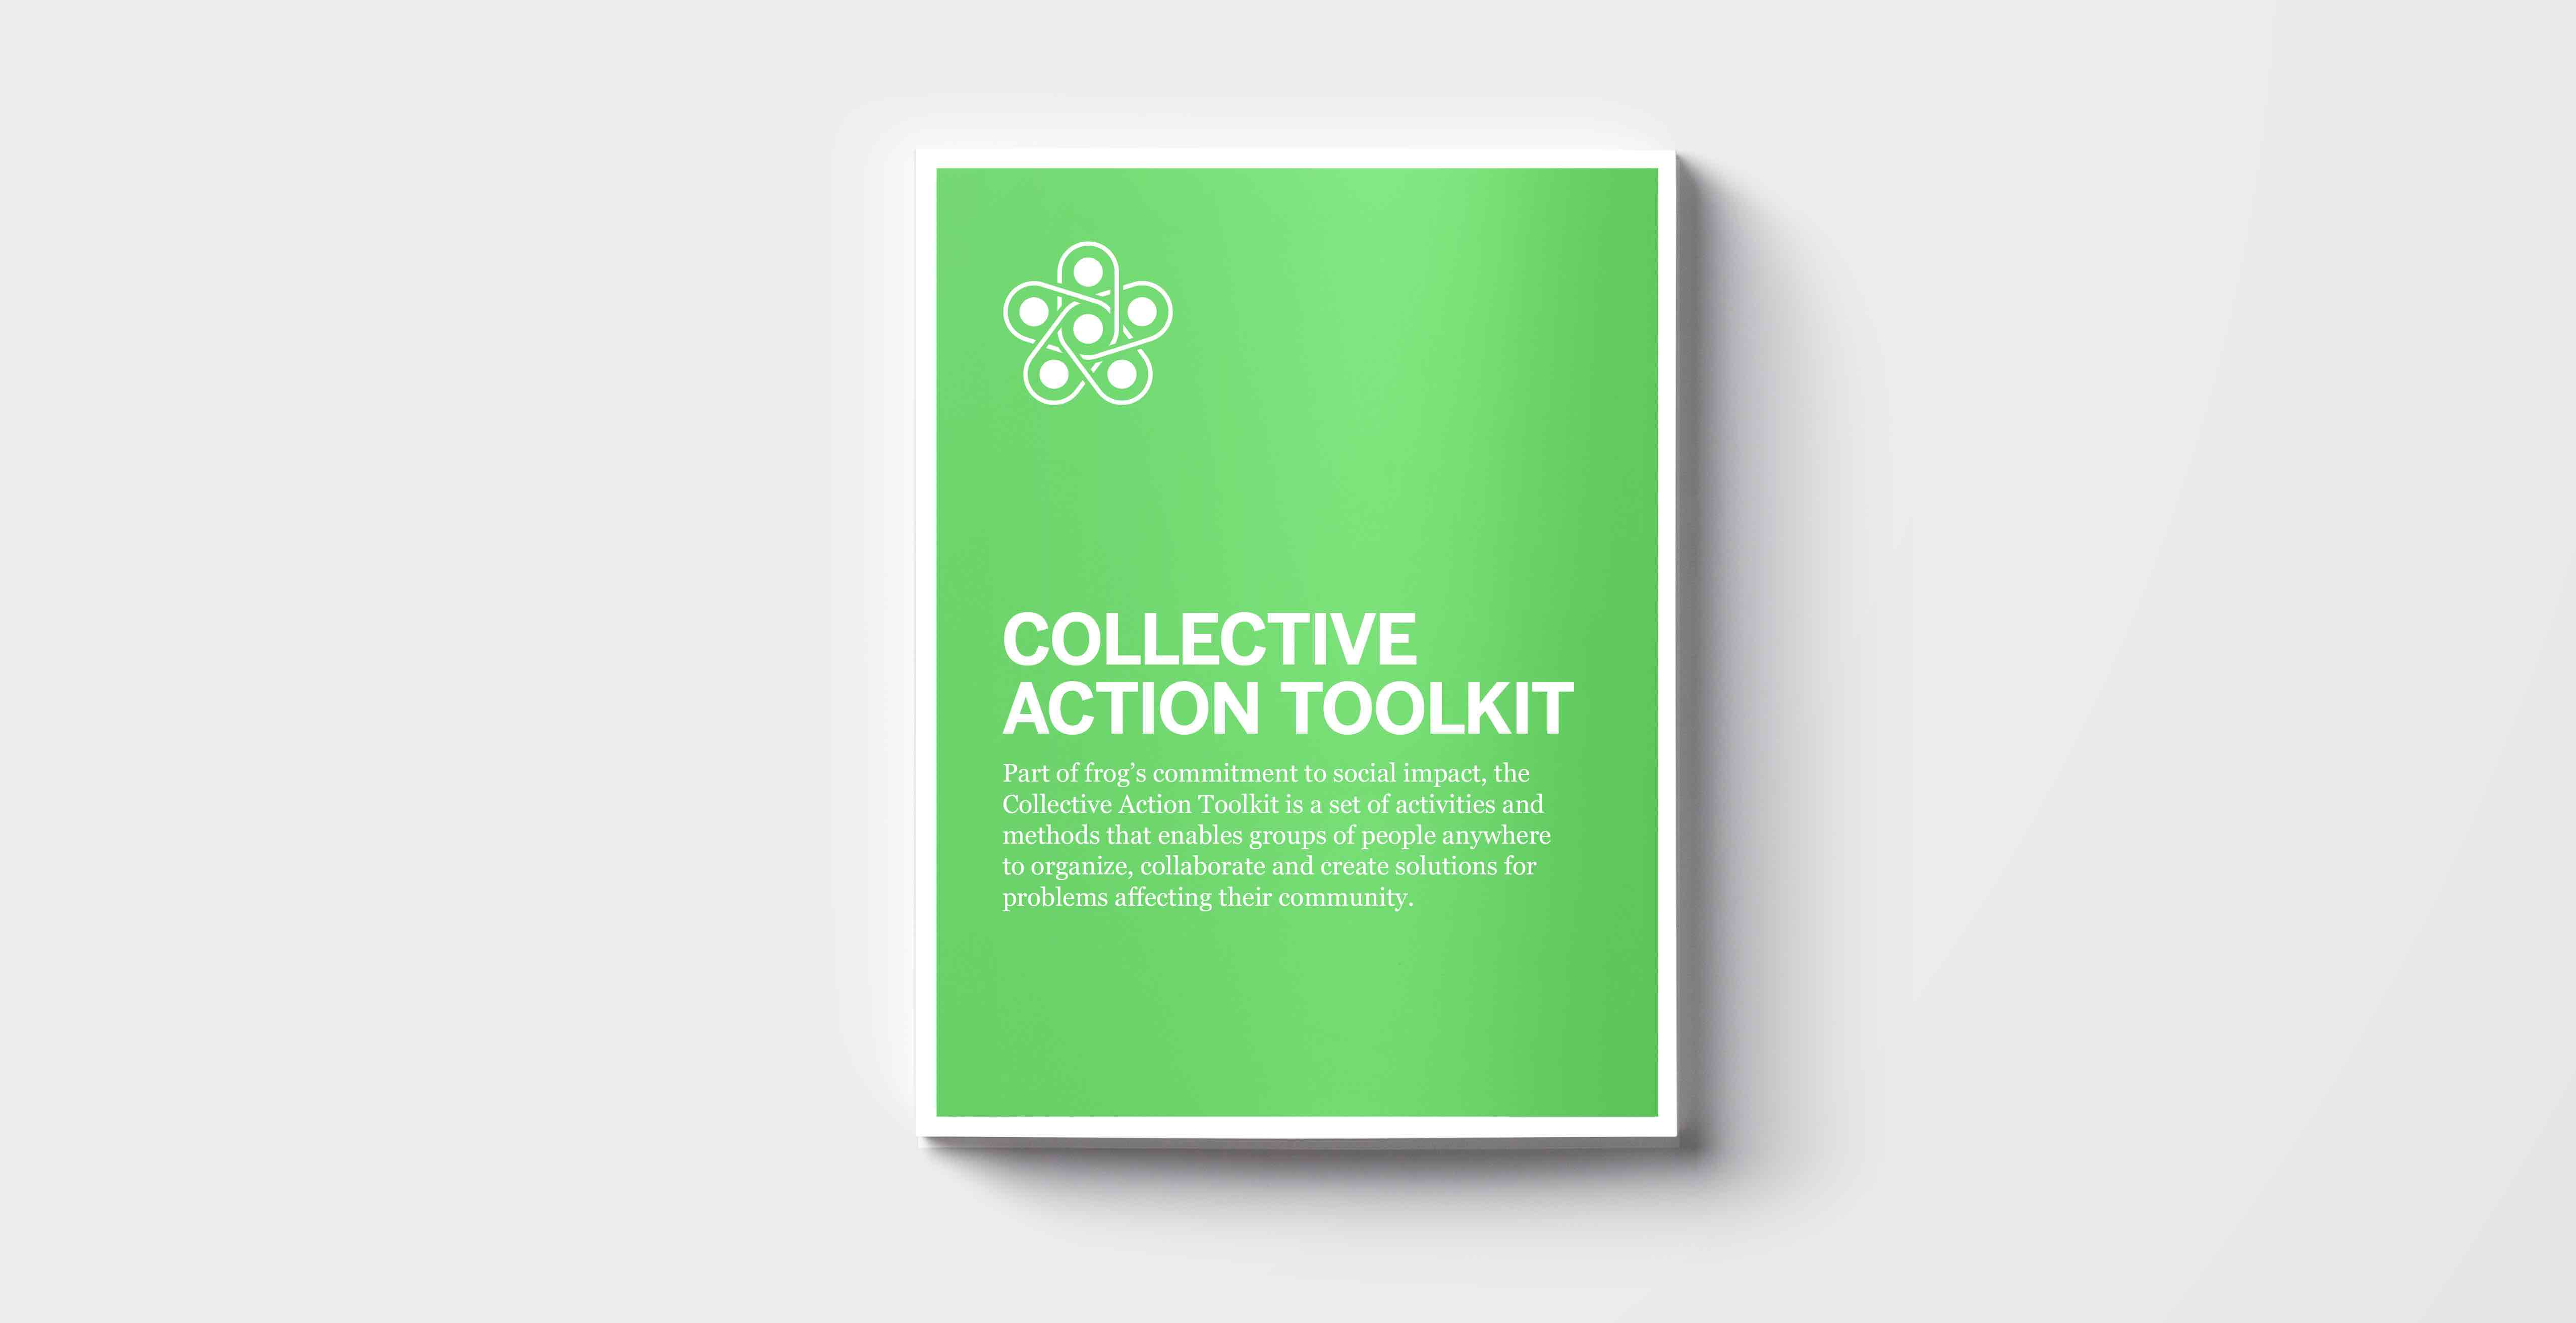 collective action toolkit_2019